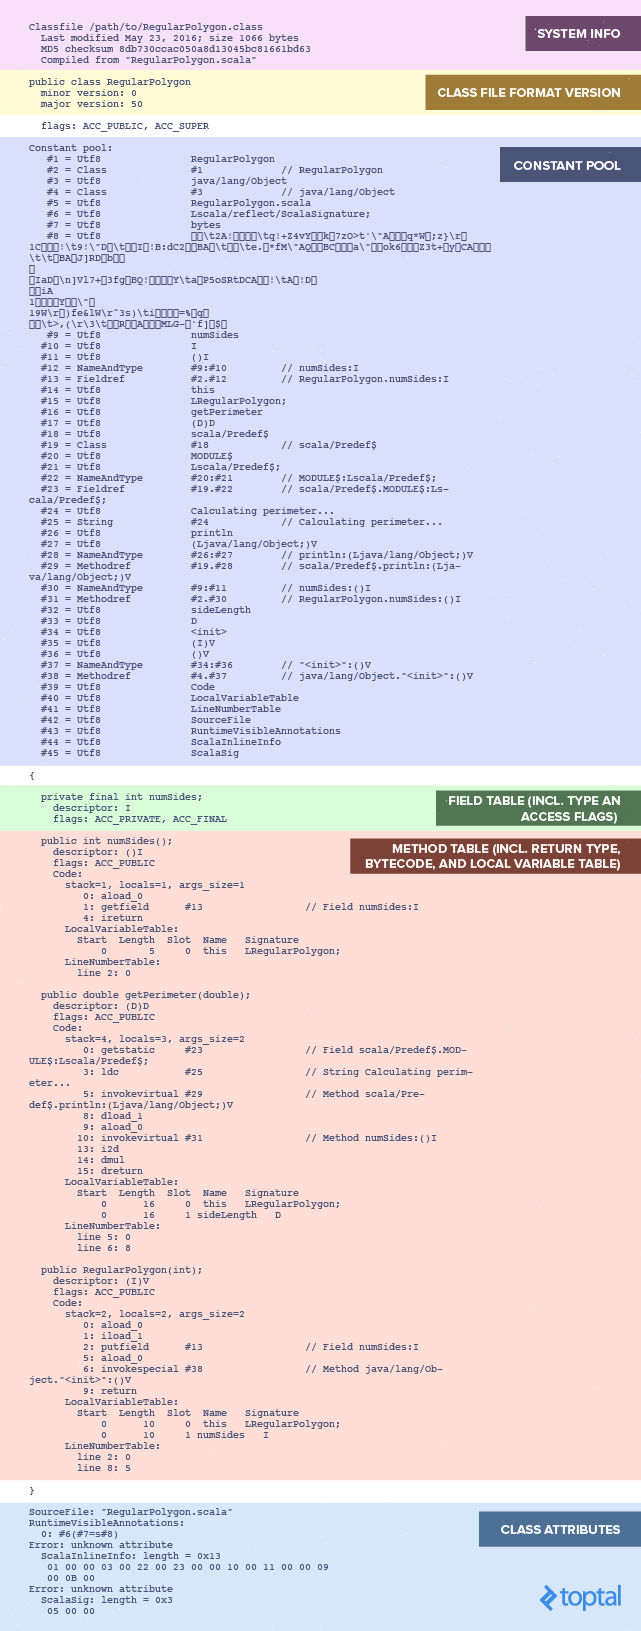 The complete contents of a Java class file.